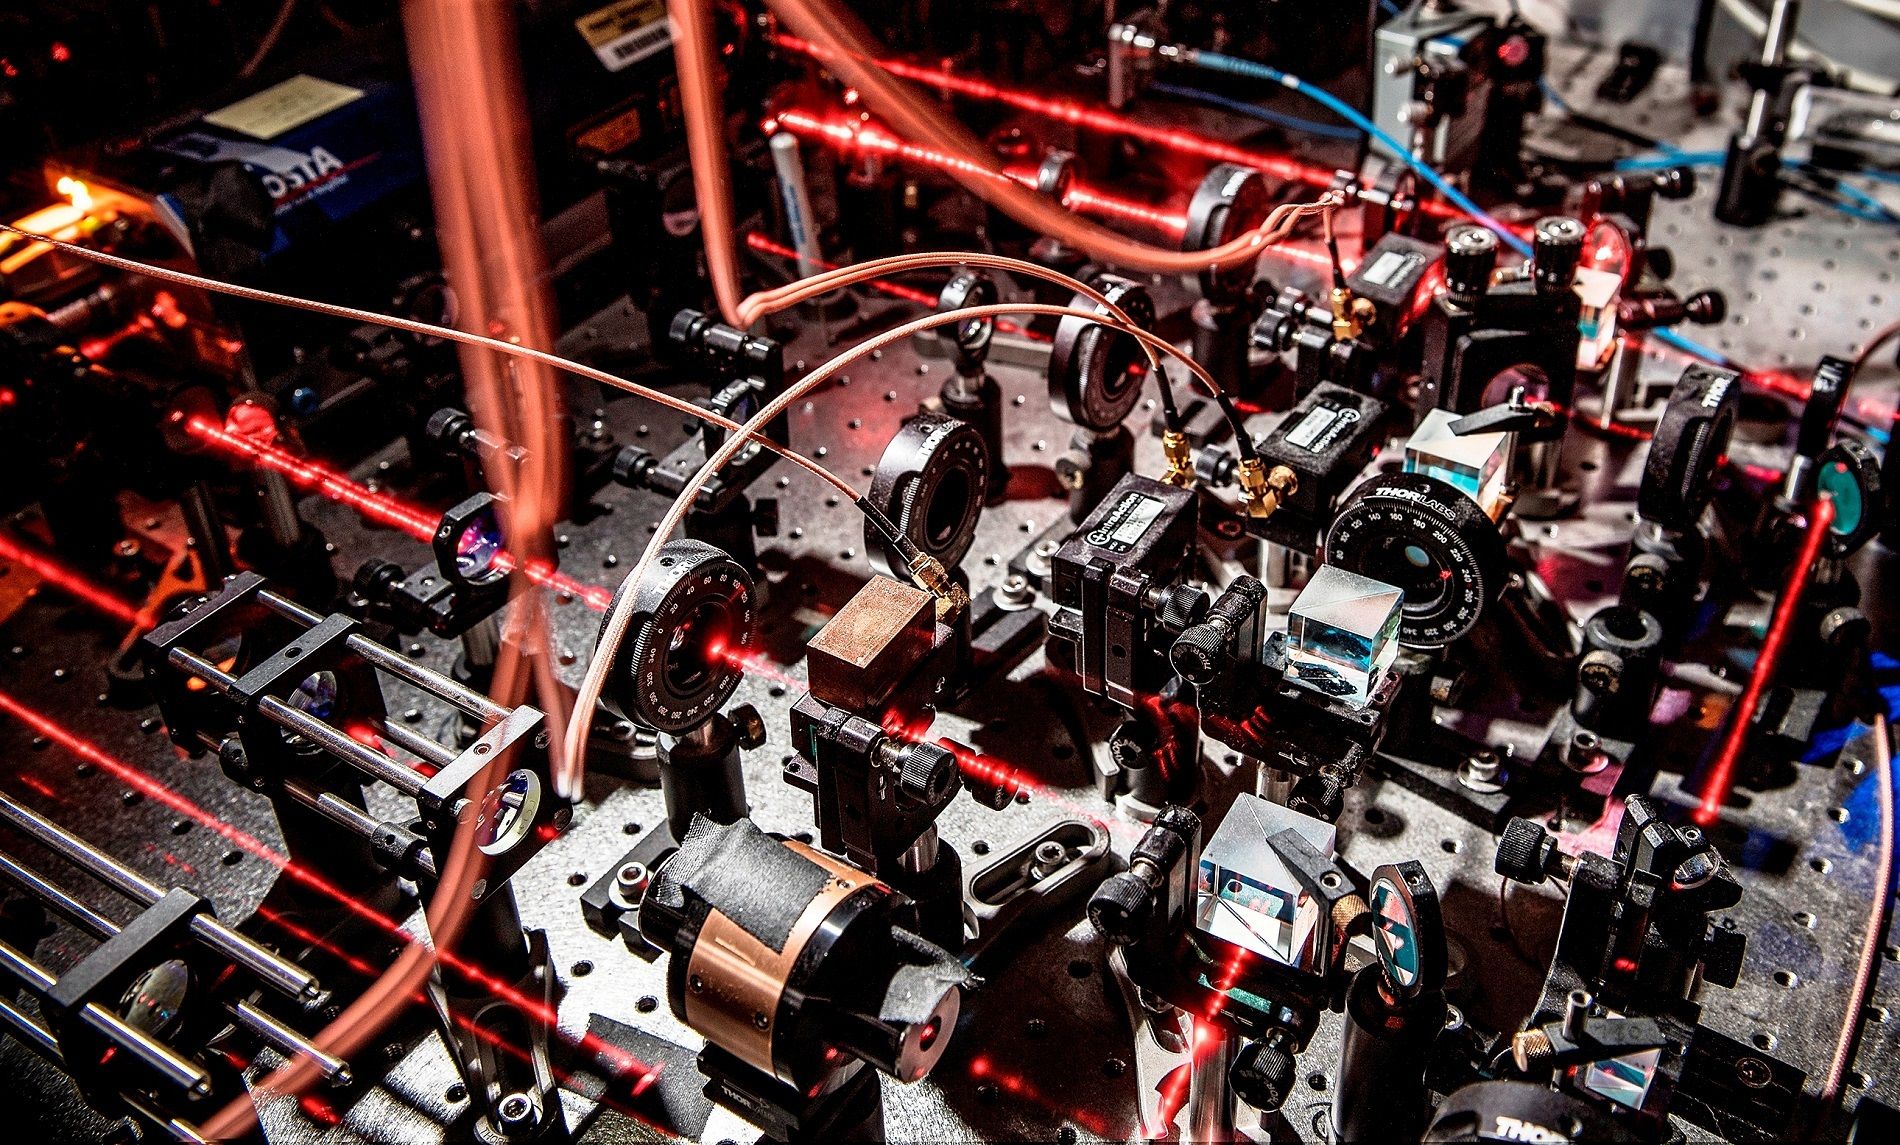 Purdue University researchers used lasers to trap and cool atoms down to nearly absolute zero, at which point they become a quantum fluid known as Bose-Einstein condensate, and collided condensates with opposite spins